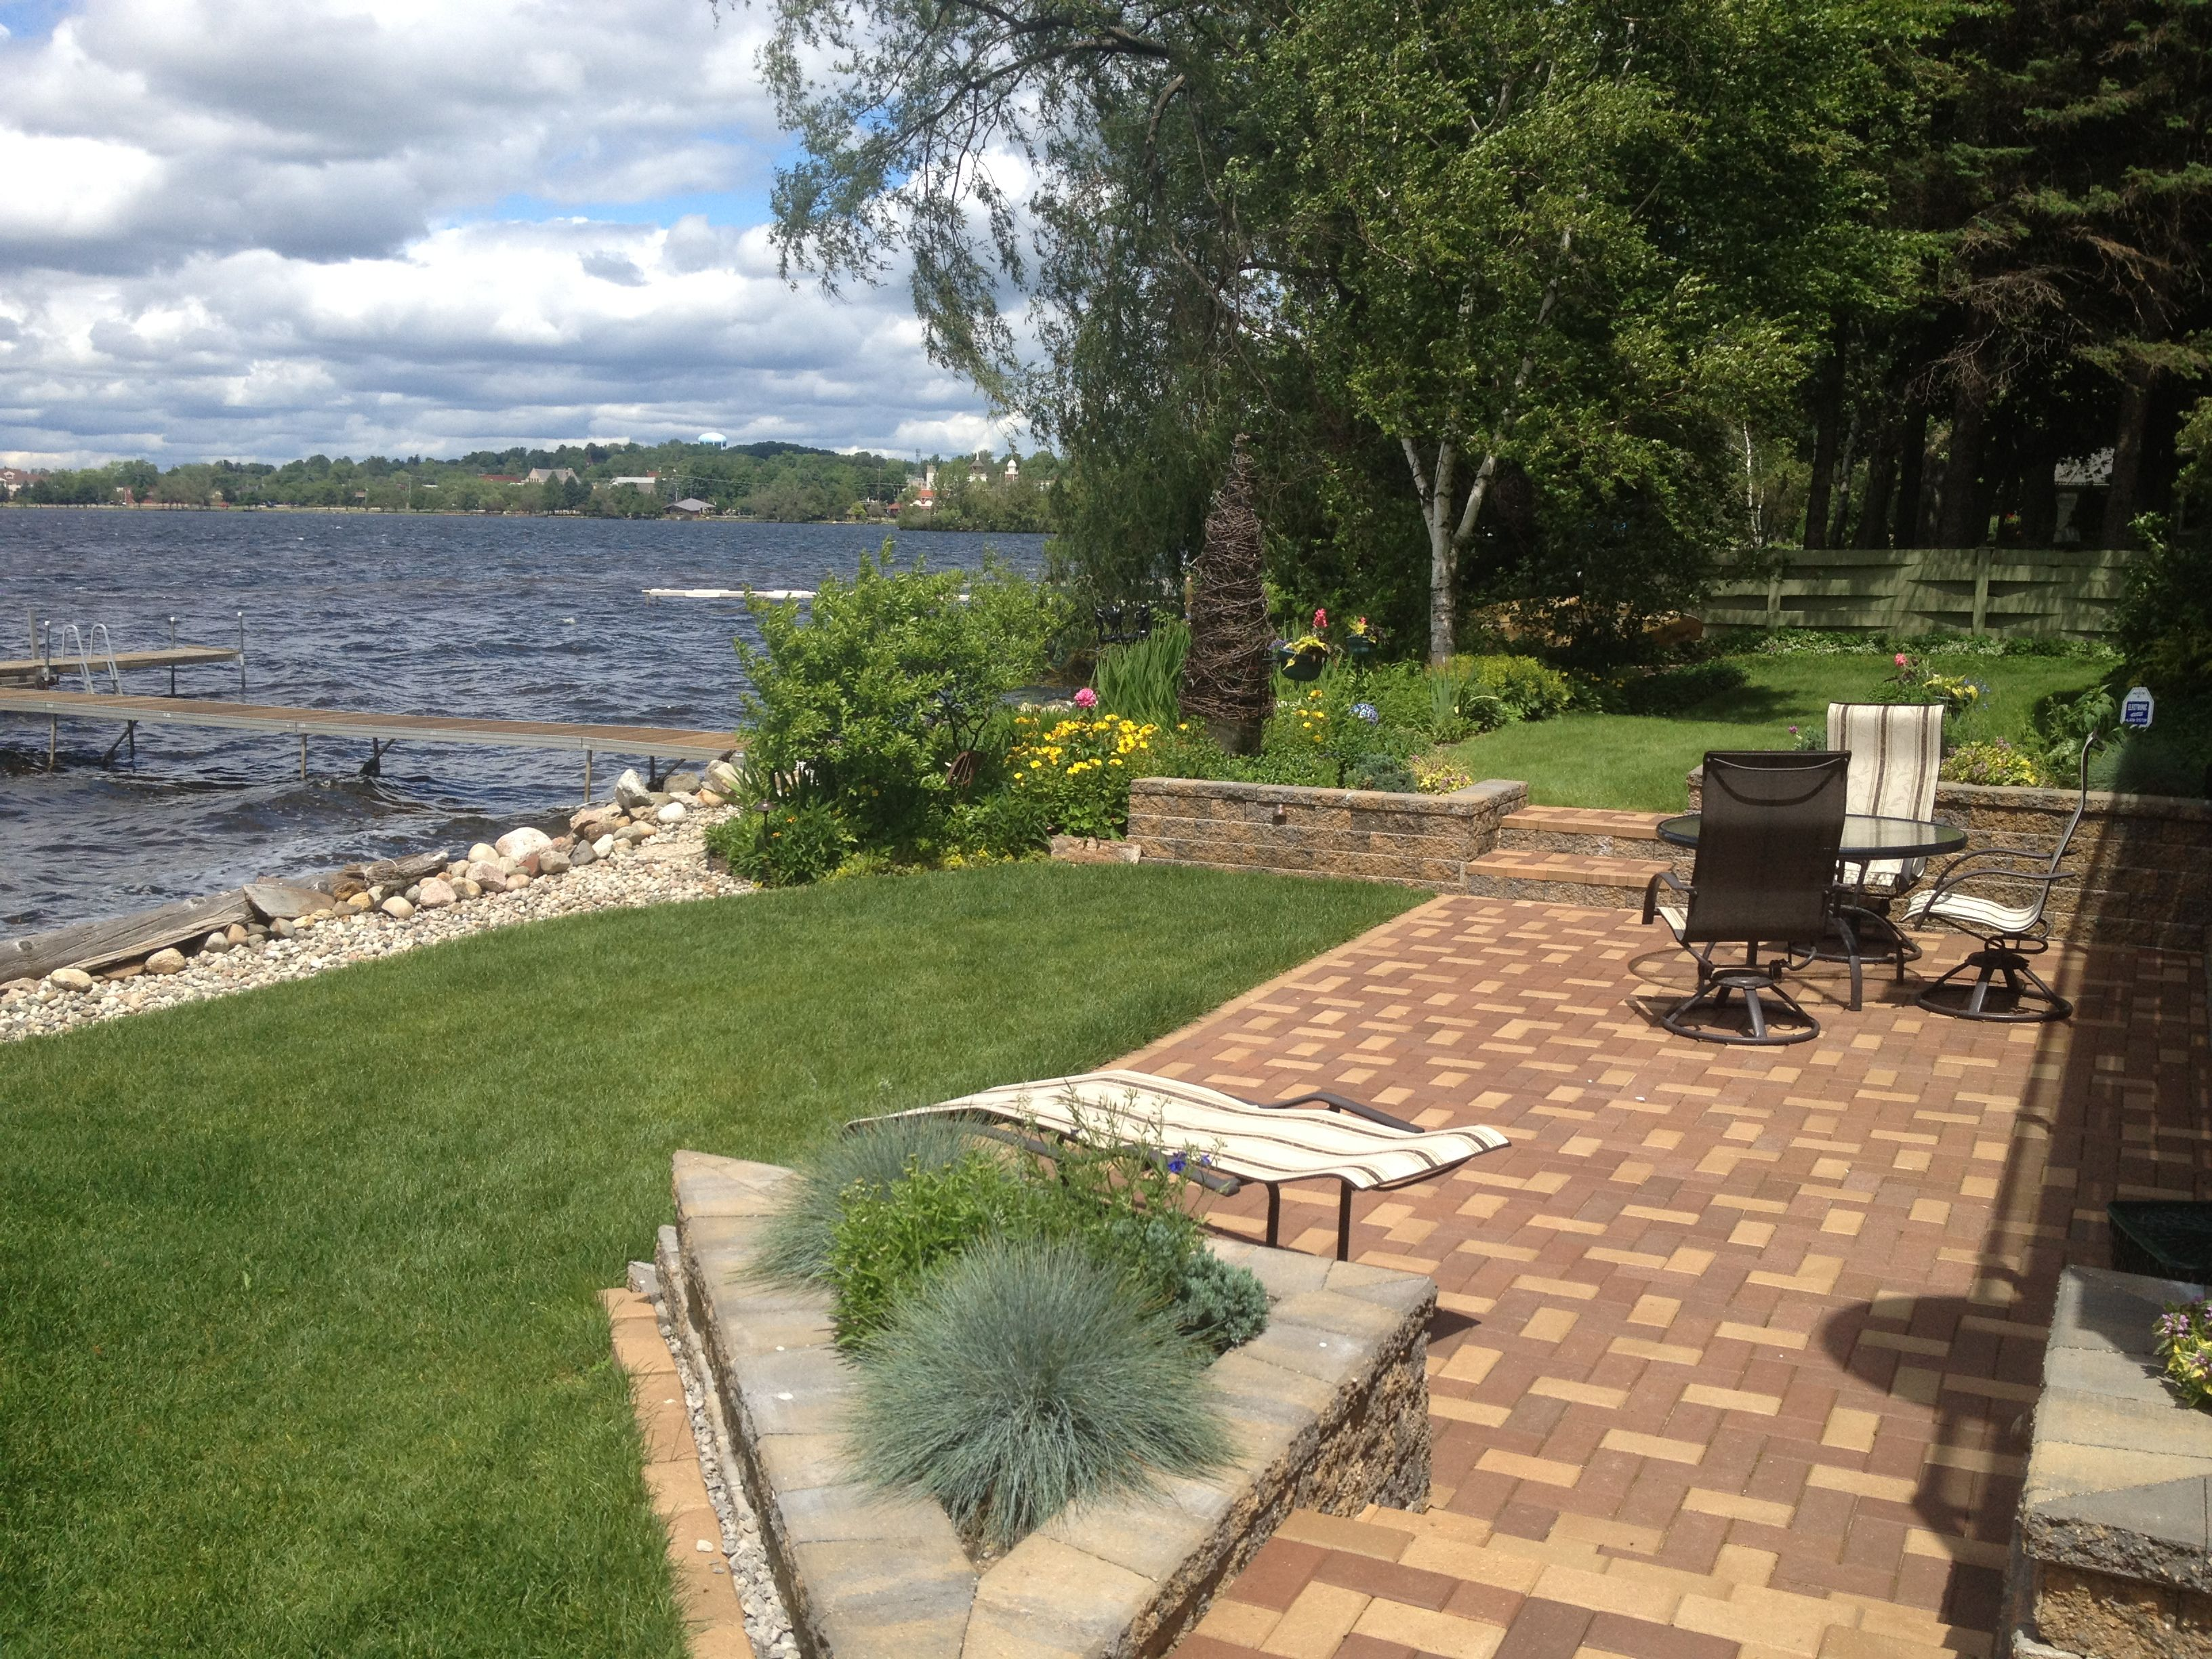 Lakefront Patio And Landscaping Backyard Landscaping Backyard